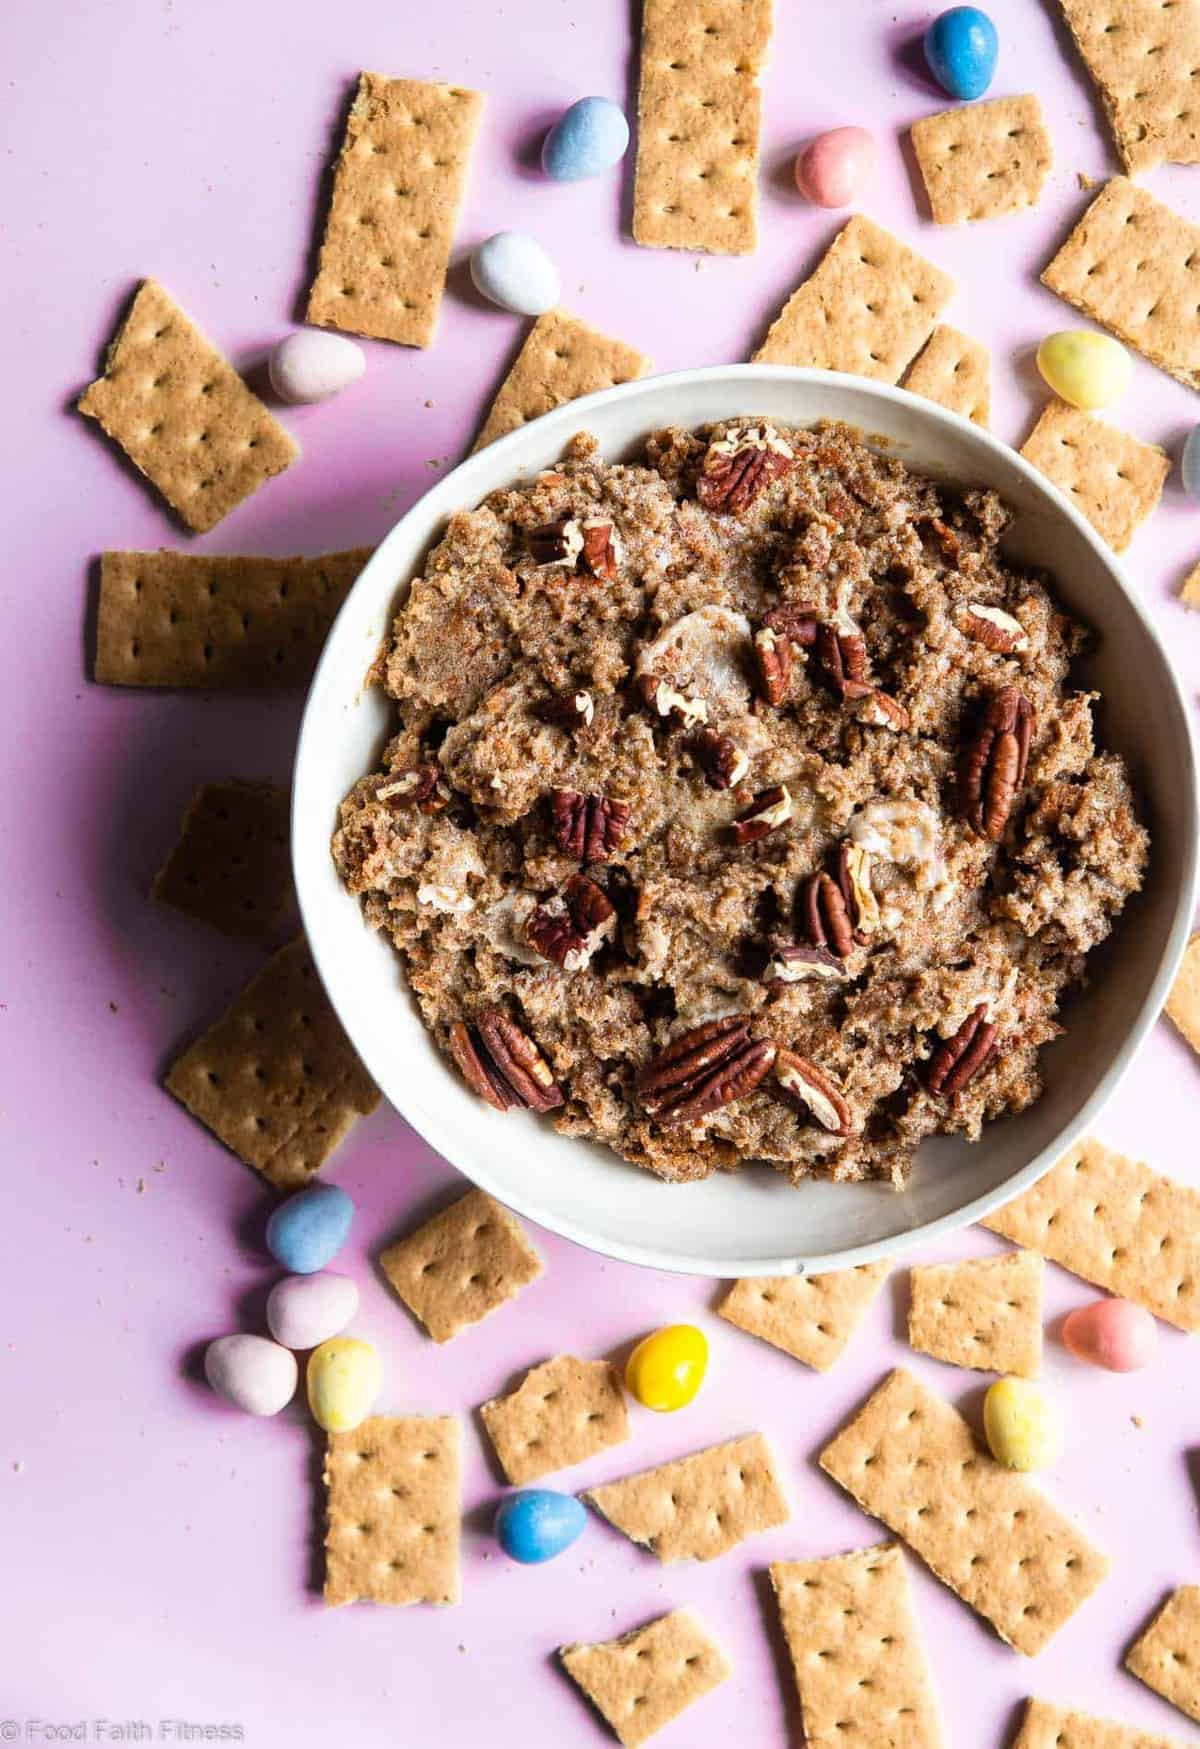 Gluten Free Carrot Cake Dip -This Gluten Free Coconut Flour Carrot Cake Dip is the EASIEST dessert you will ever make and is a huge crowd pleaser! Dairy free option included too! | #Foodfaithfitness | #Glutenfree #Healthy #Dairyfree #Easter #CarrotCake